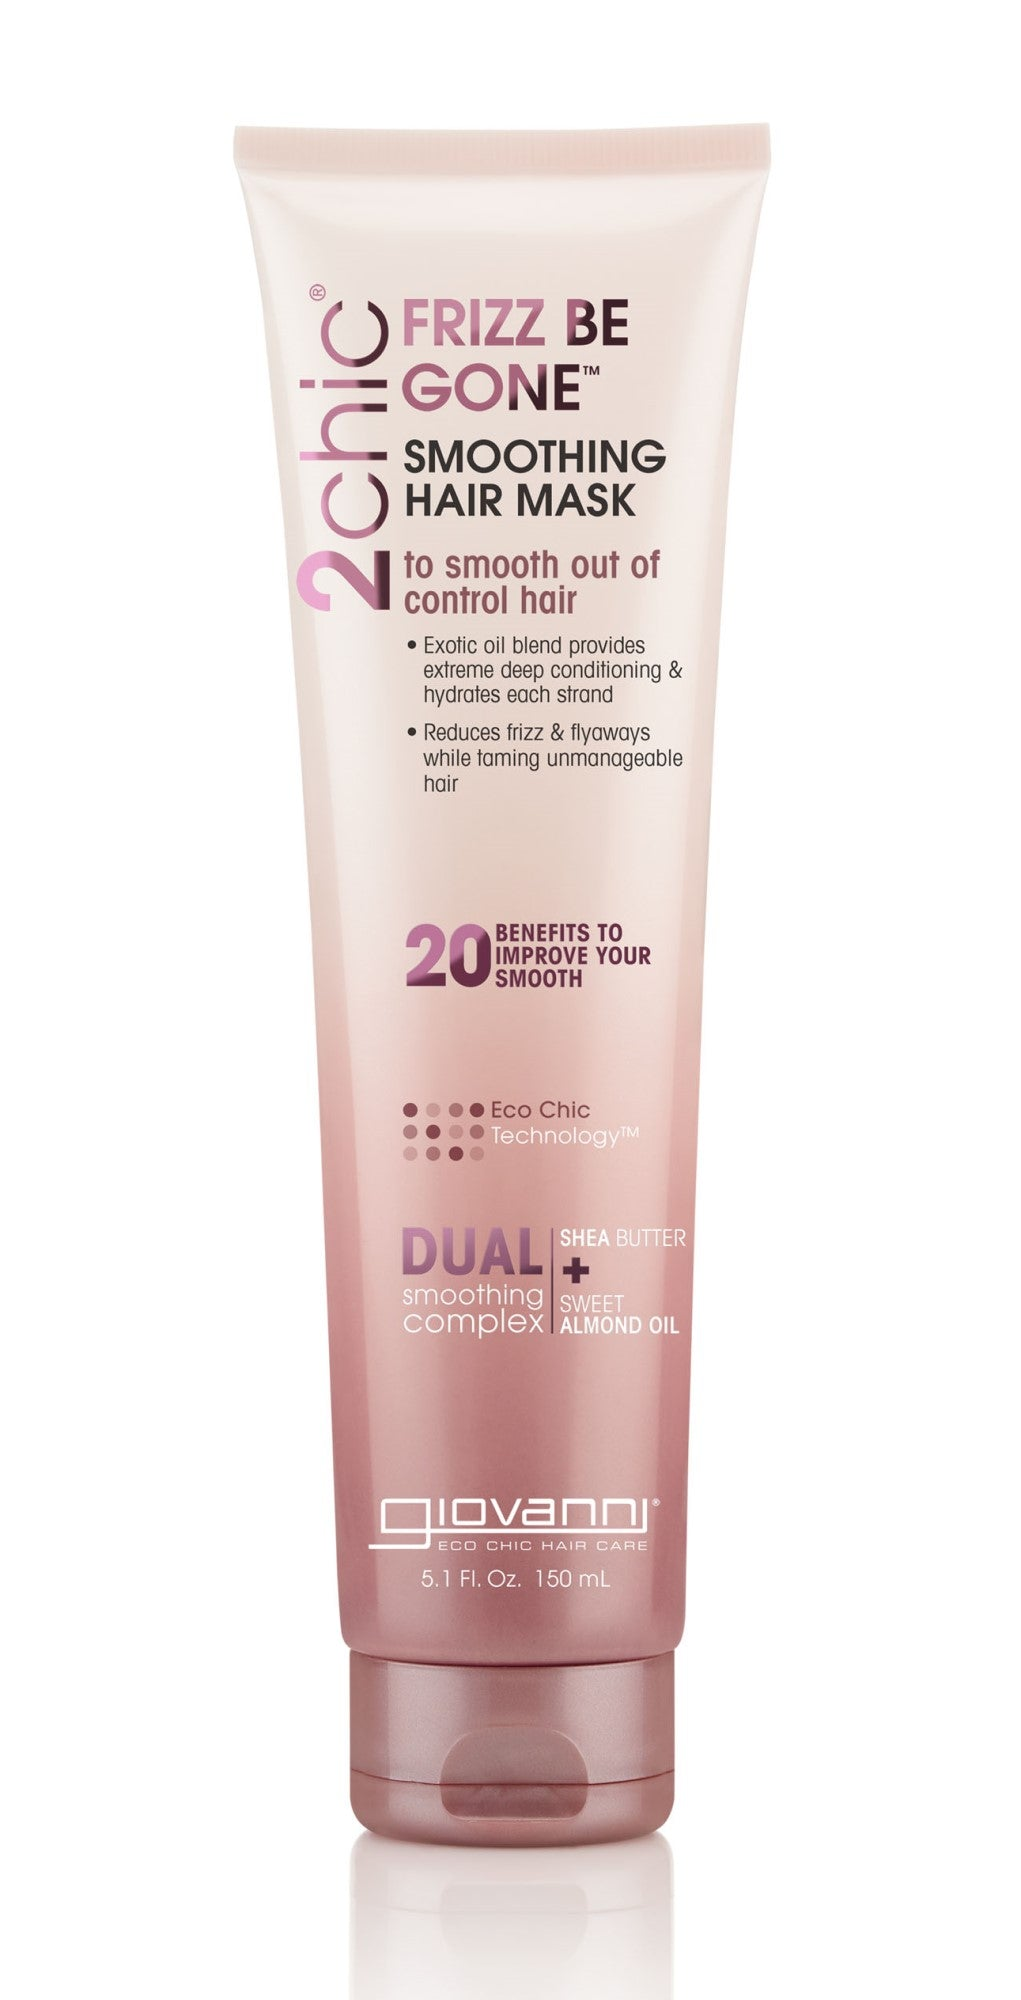 Giovanni 2 Chic Frizz be Gone SMOOTHING Hair Mask